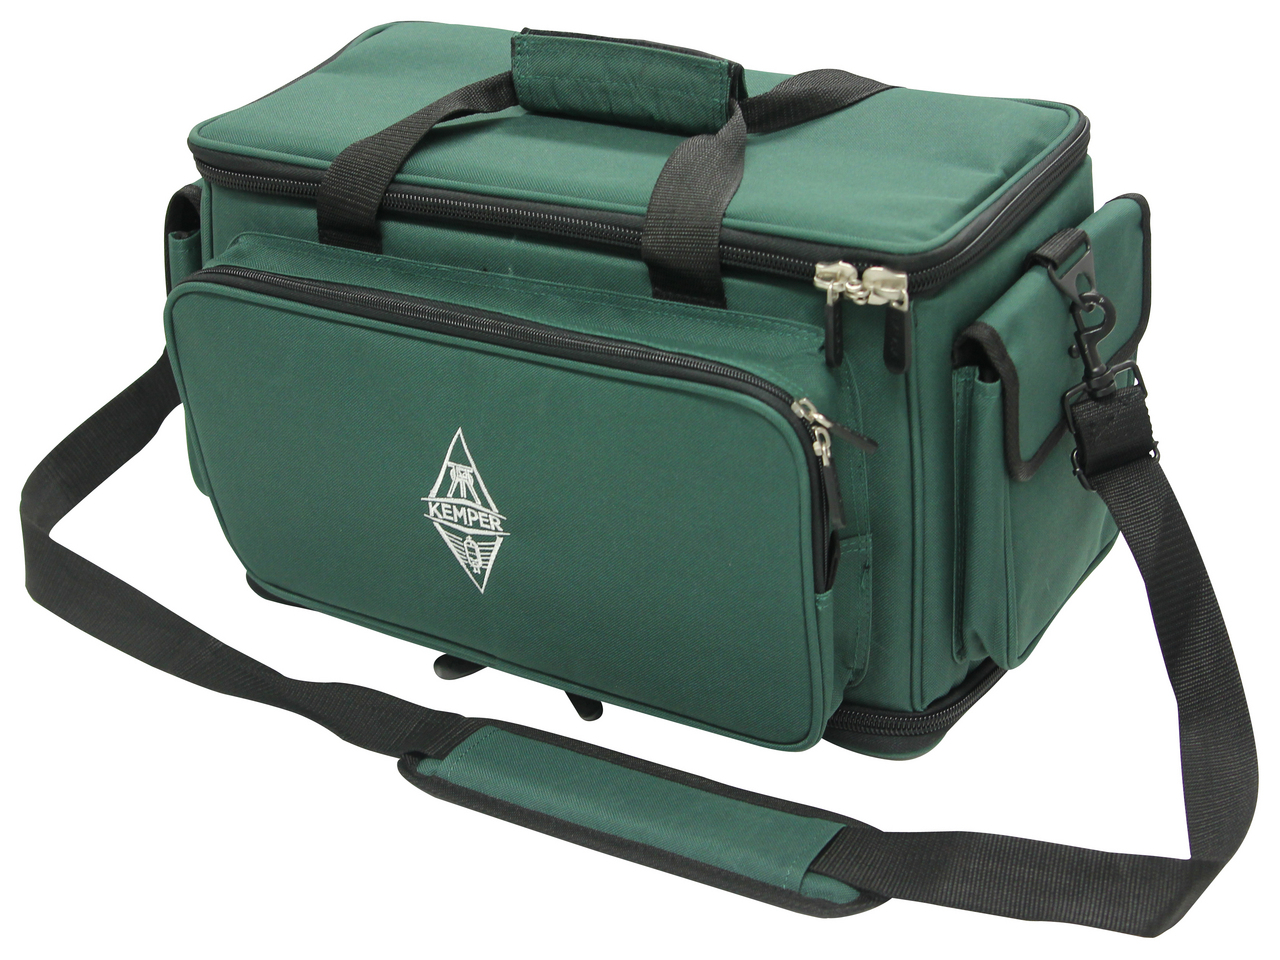 Kemper Kemper Case KPA [You can instant delivery unopened article!]